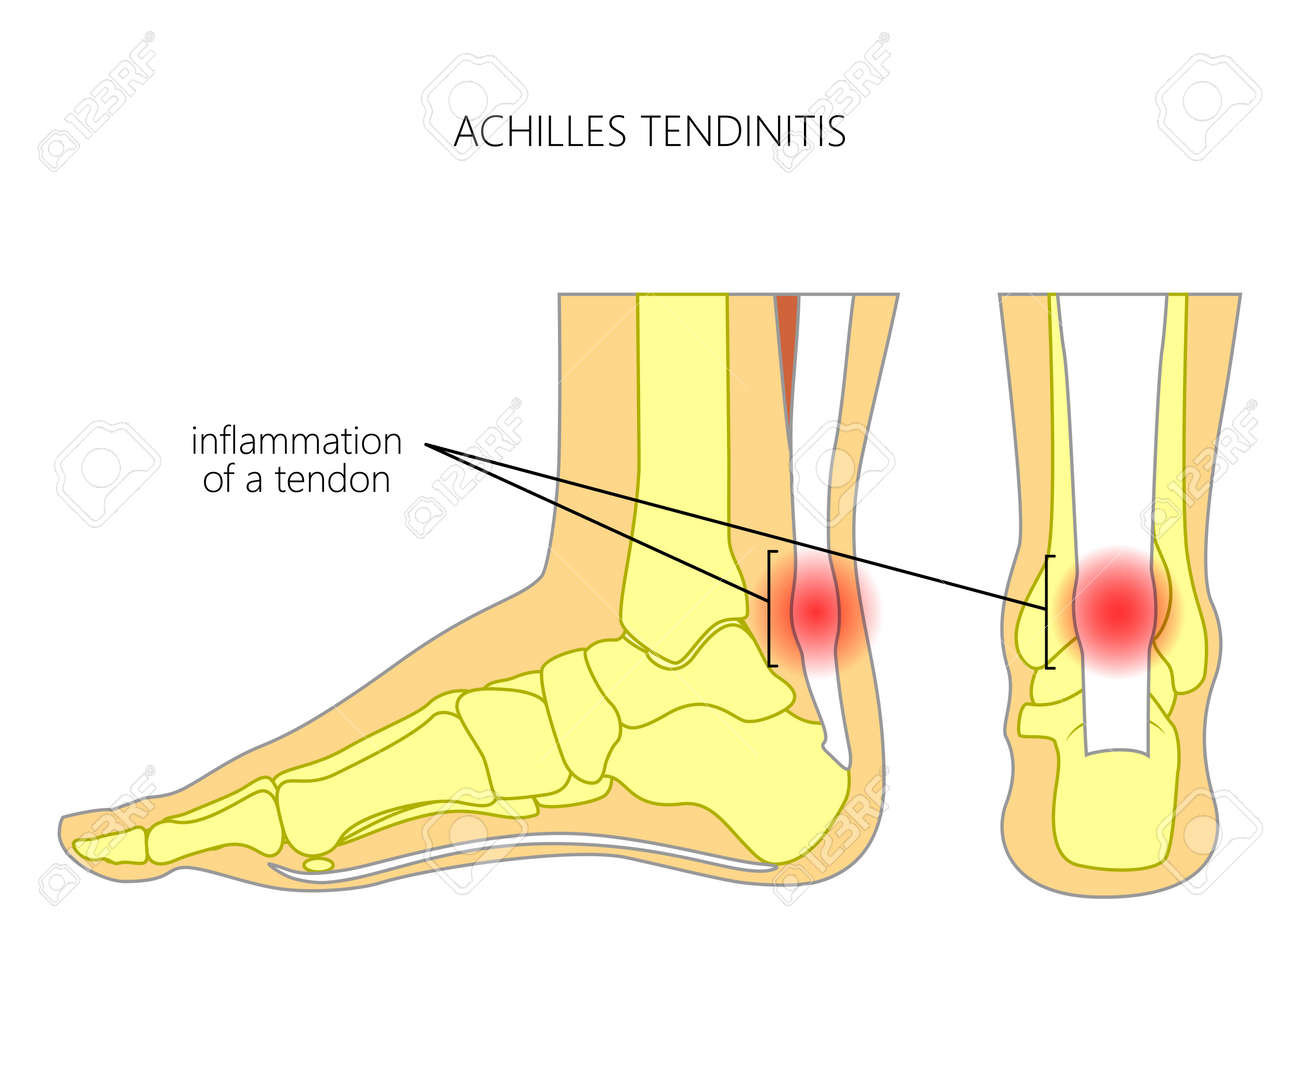 Illustration of Skeletal ankle (side view and back view) with tendinitis of Achilles tendon. Used: Gradient, transparence, blend mode. - 75307081